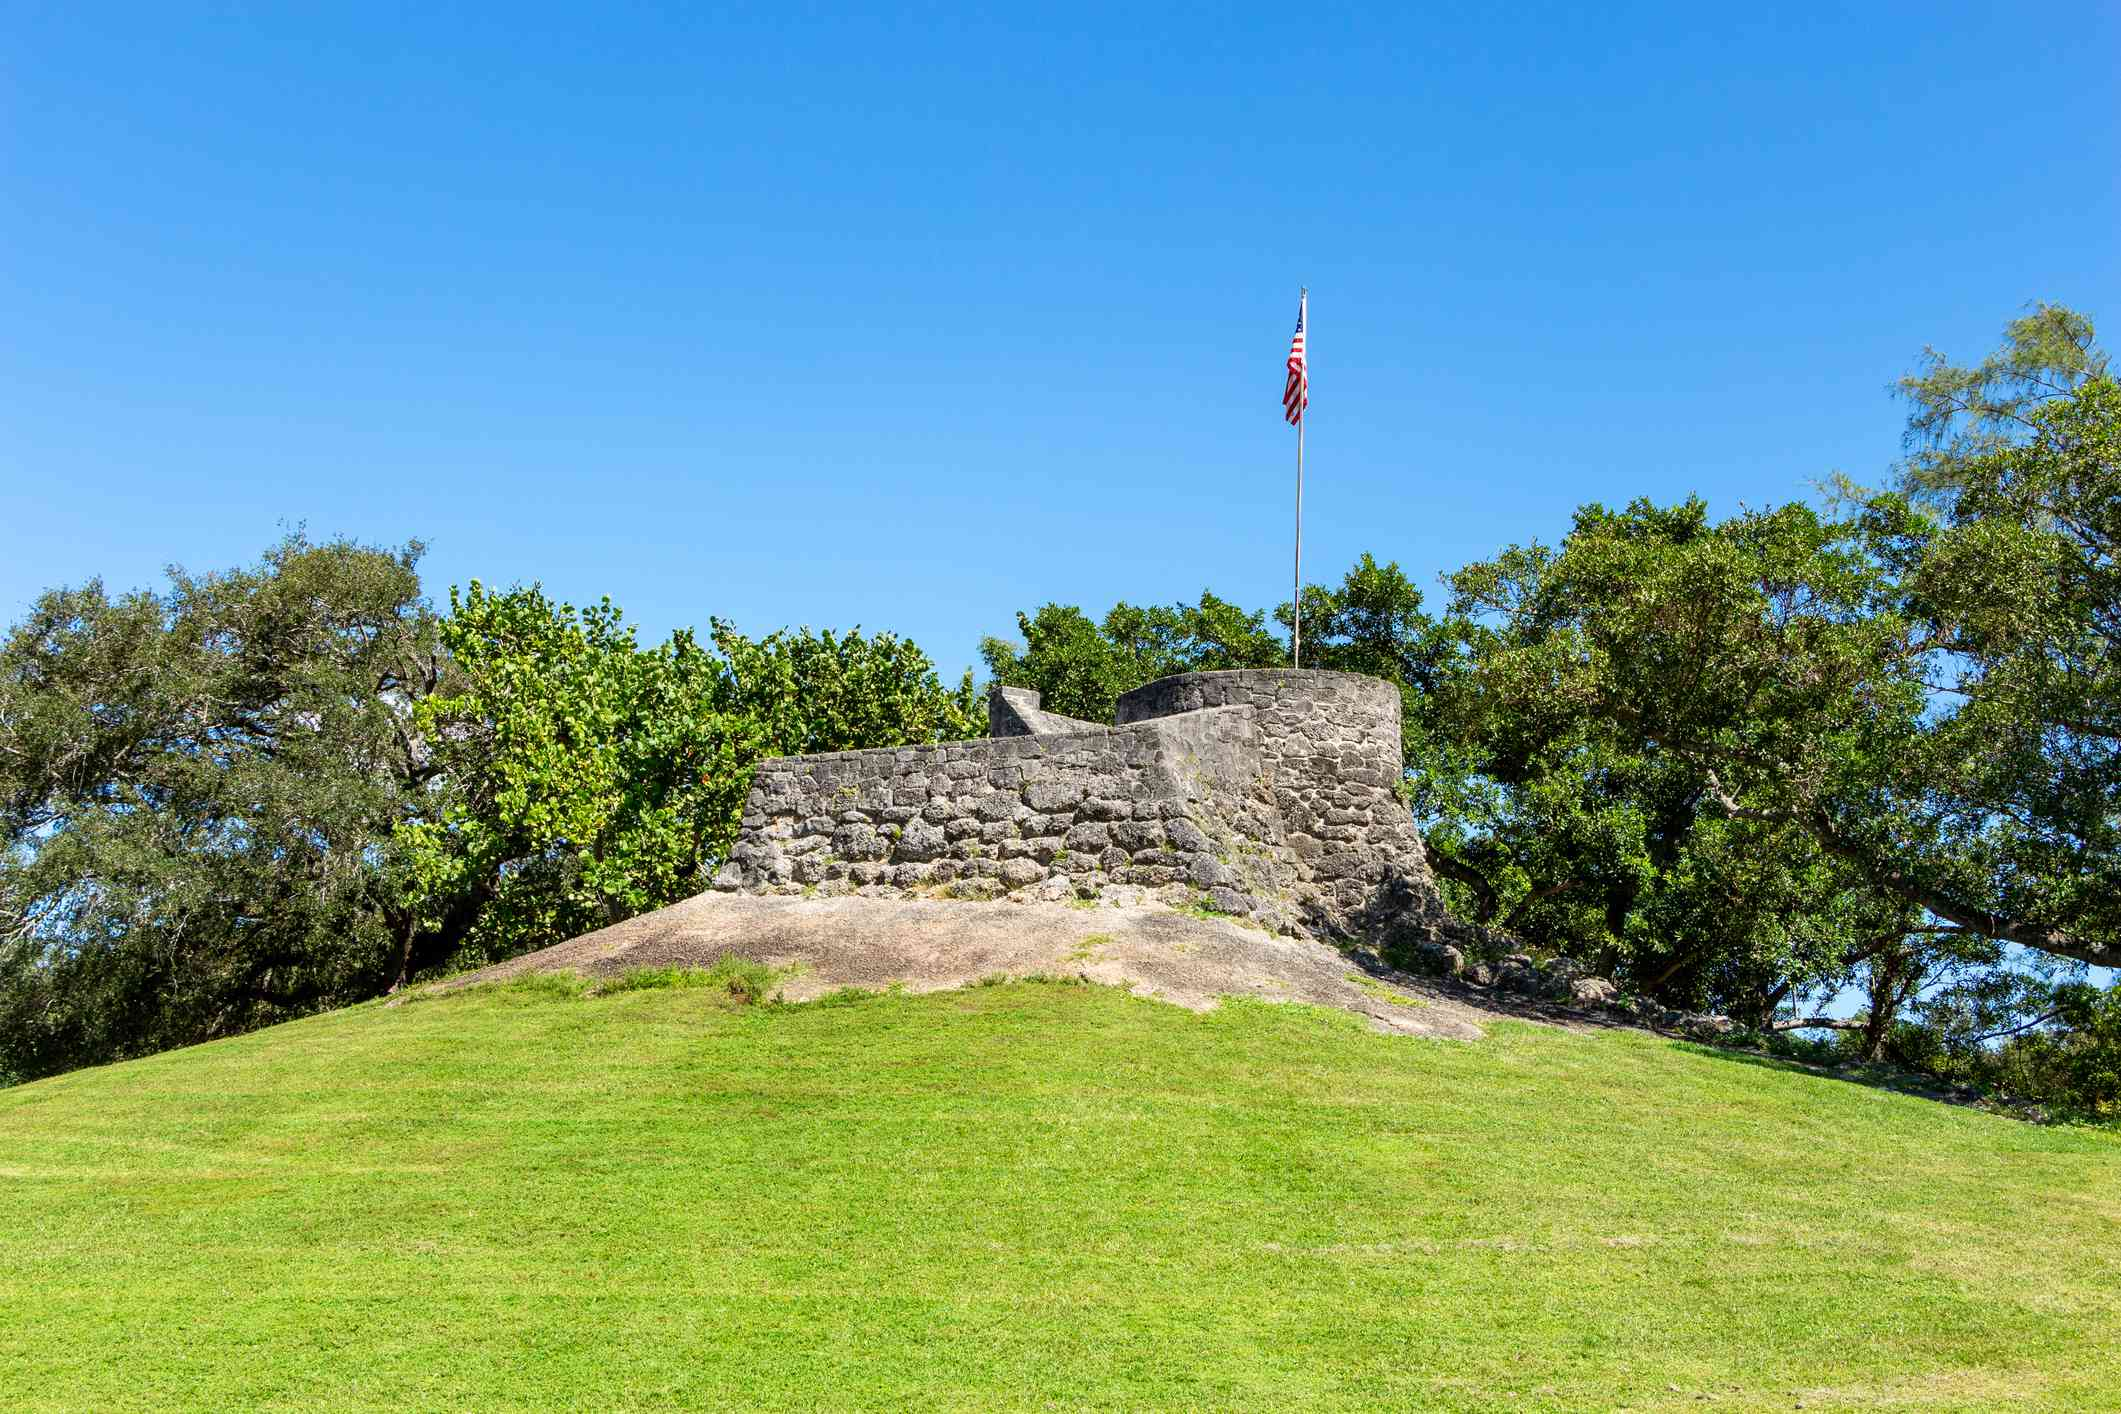 An observation mound with a stone structure at Greynolds park in Miami